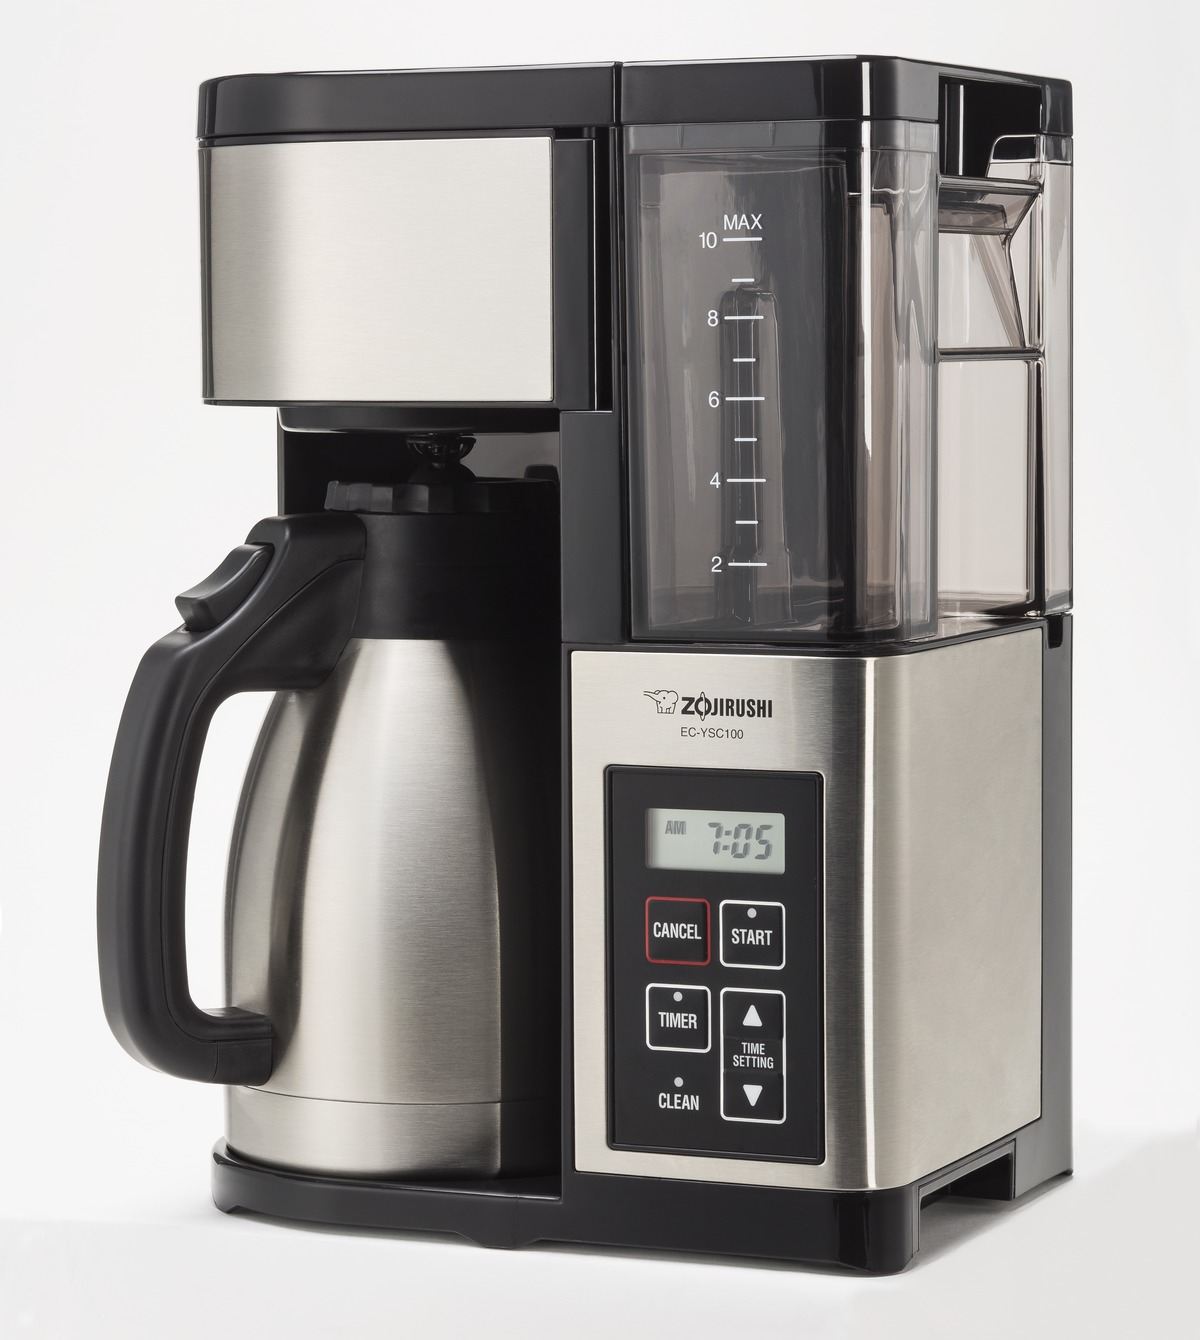 Coffeemaker Wikipedia: how to make coffee with a coffee maker